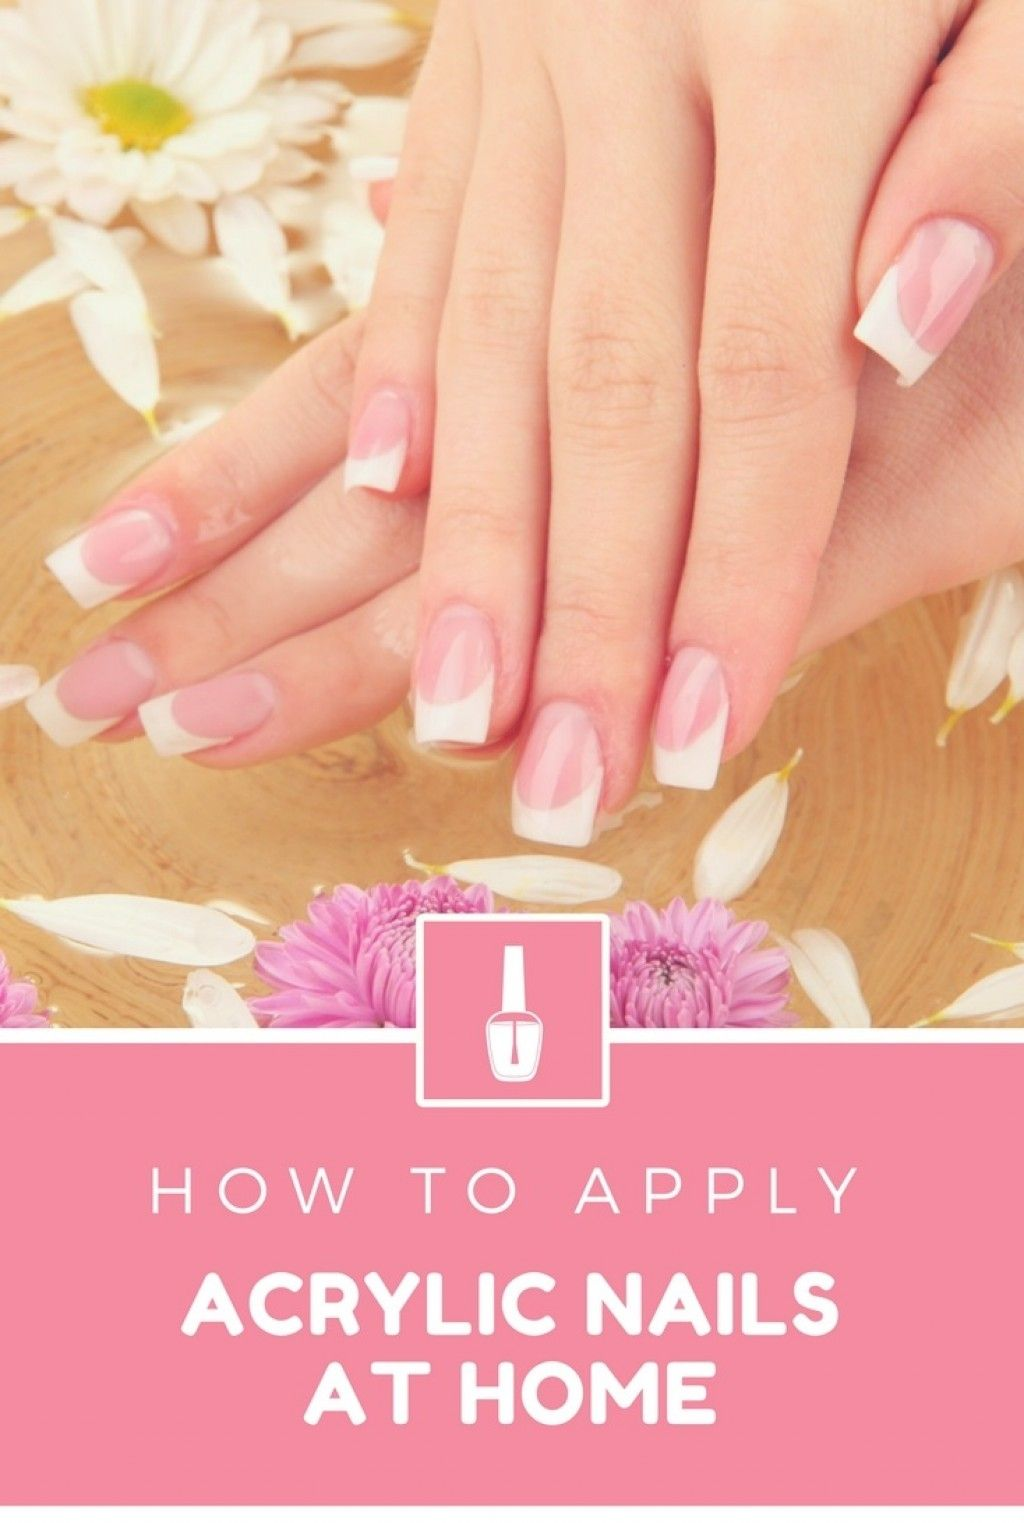 How To Apply Acrylic Nails At Home Acrylic Nails At Home Diy Acrylic Nails Acrylic Nails